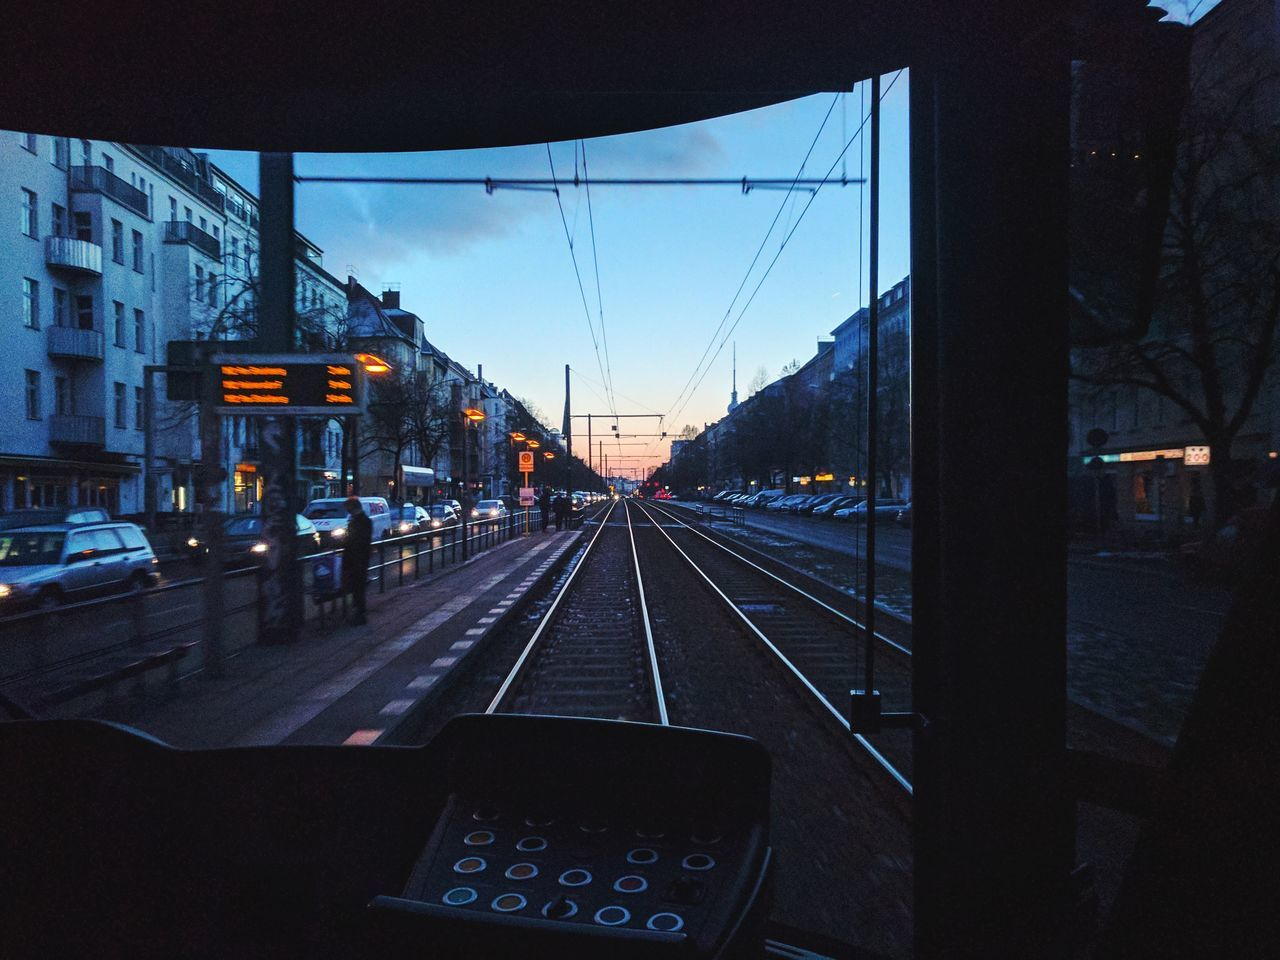 Transportation Sky Illuminated Rail Transportation Architecture The Way Forward No People Built Structure City Building Exterior Public Transportation Outdoors Day Prenzlauer Berg Berliner Ansichten Vanishing Point Fernsehturm Architecture Winter Berlin Tram Inside Commuting Commute Tracks